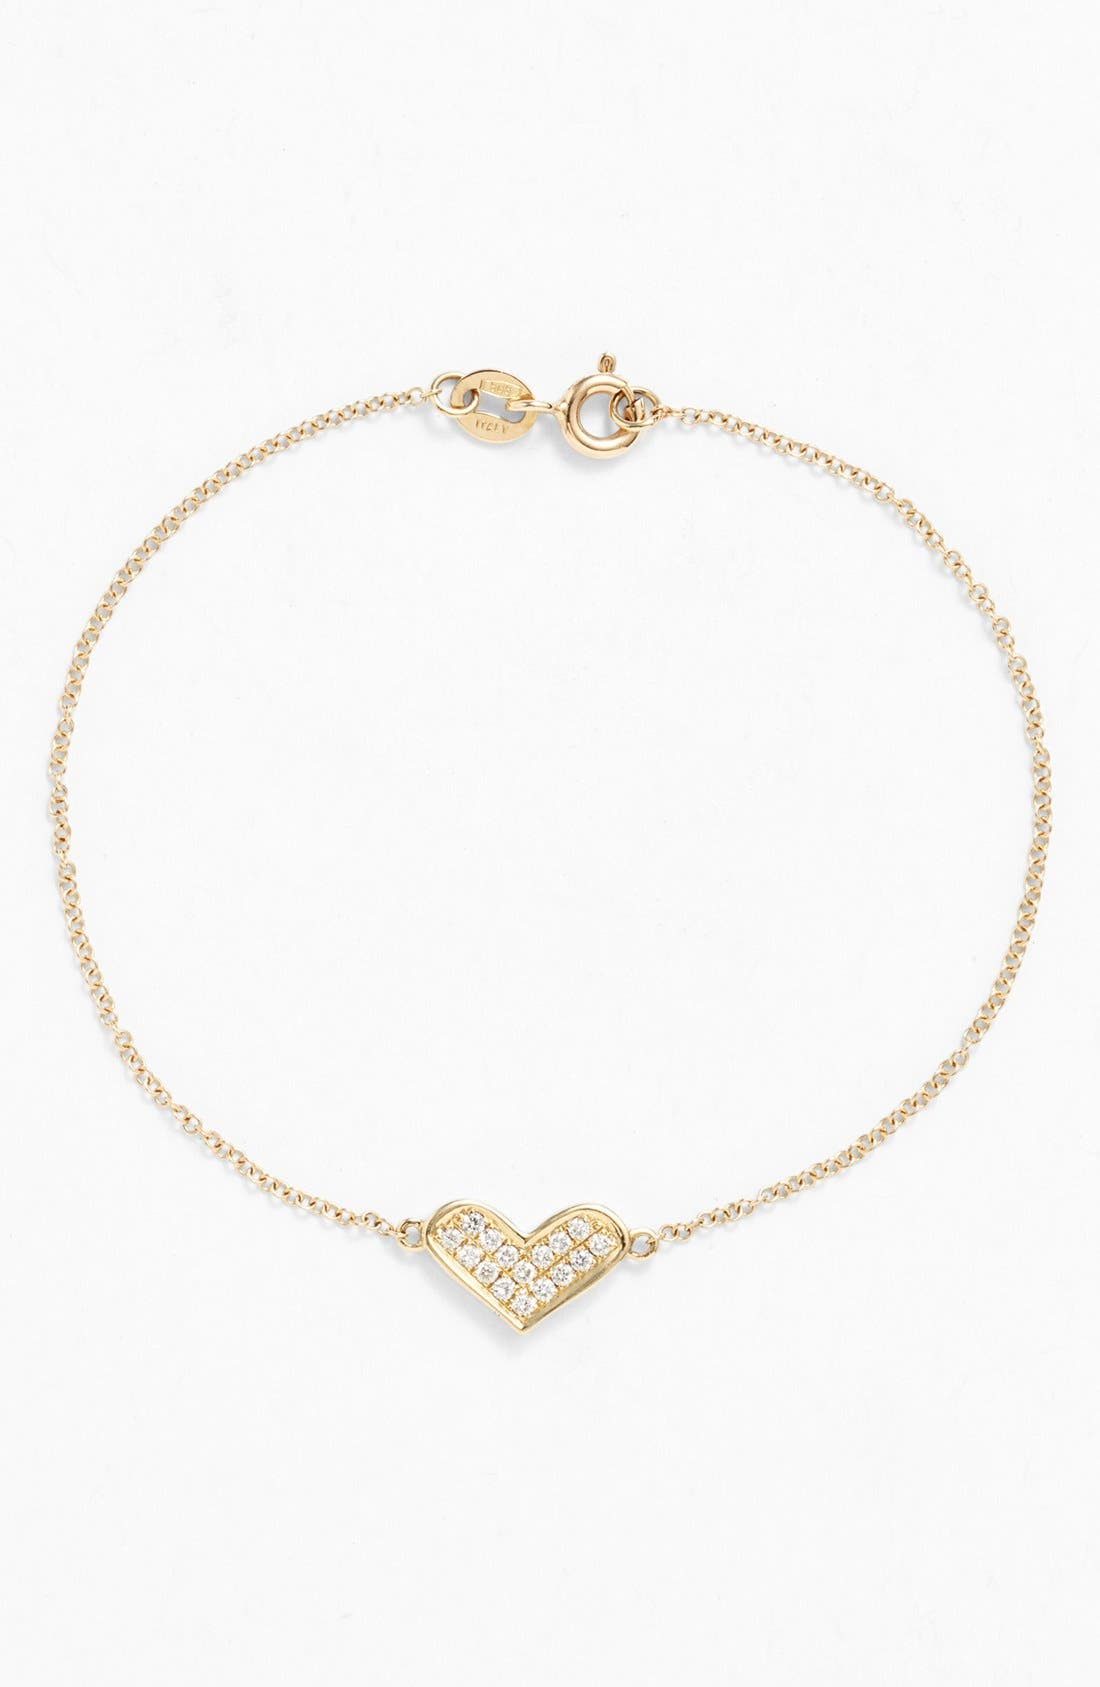 Alternate Image 1 Selected - Dana Rebecca Designs 'Jacquie C.' Reversible Diamond Heart Bracelet